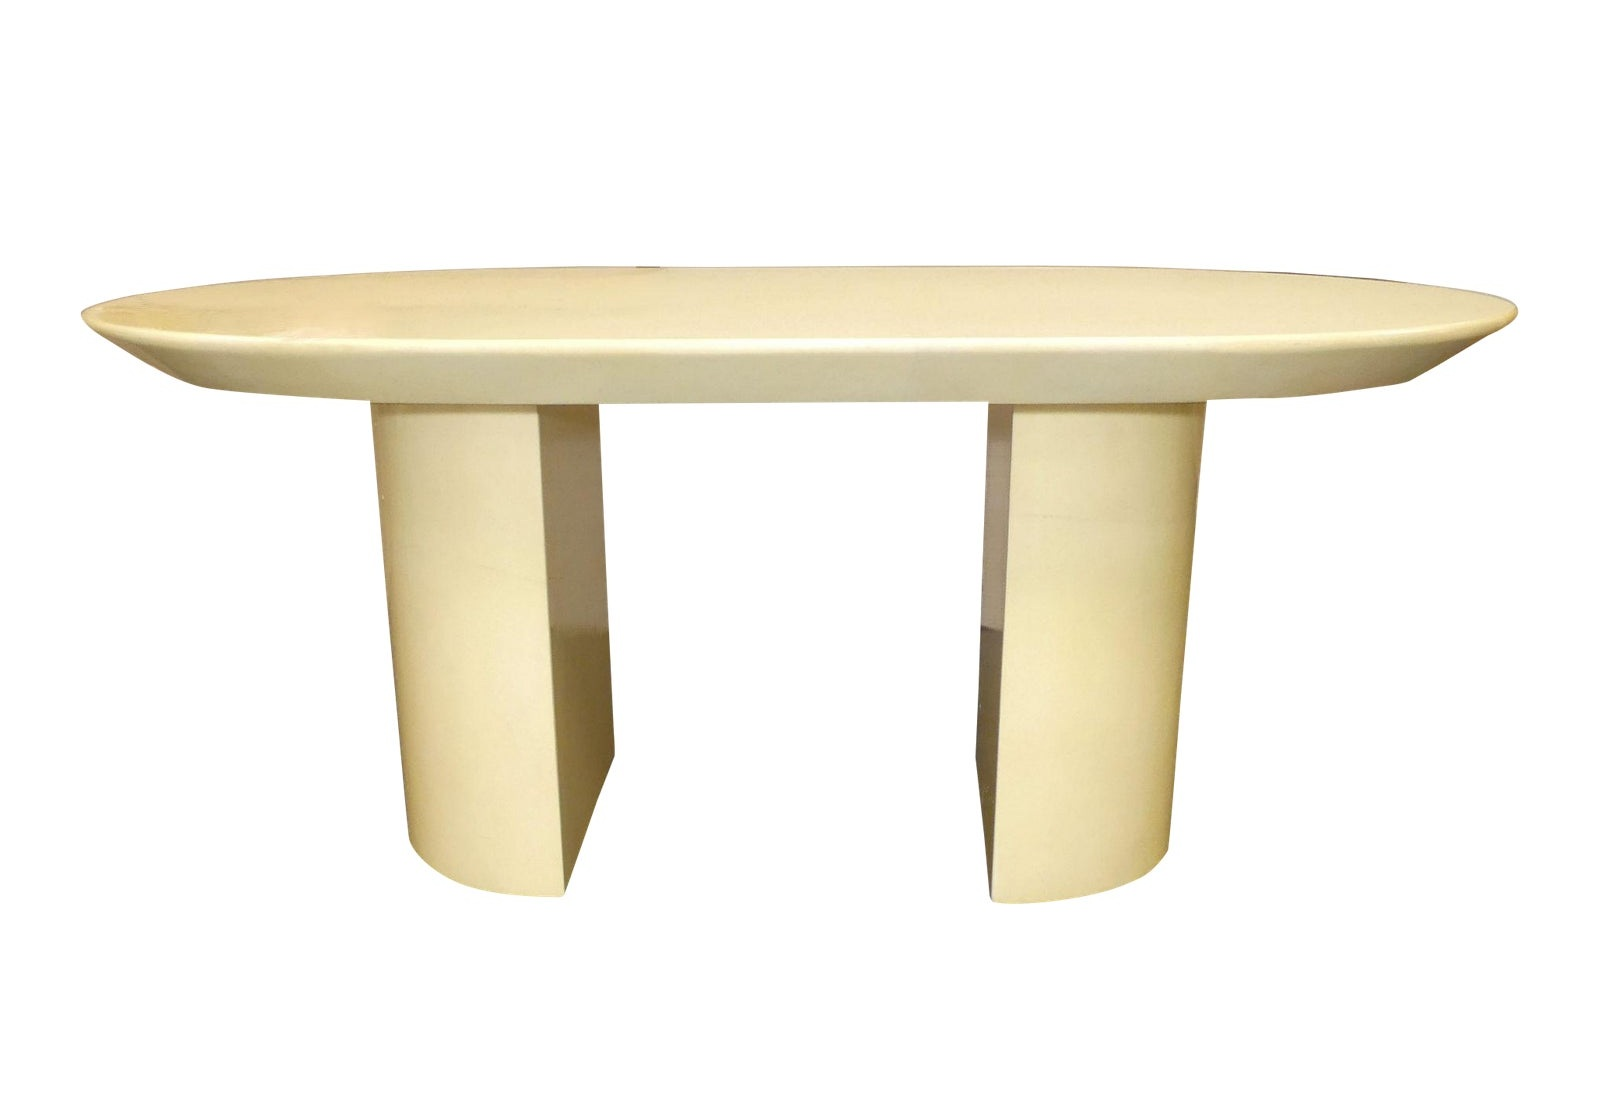 JIMECO LTDA Oval Goatskin Dining Table or Desk Made in Colombia